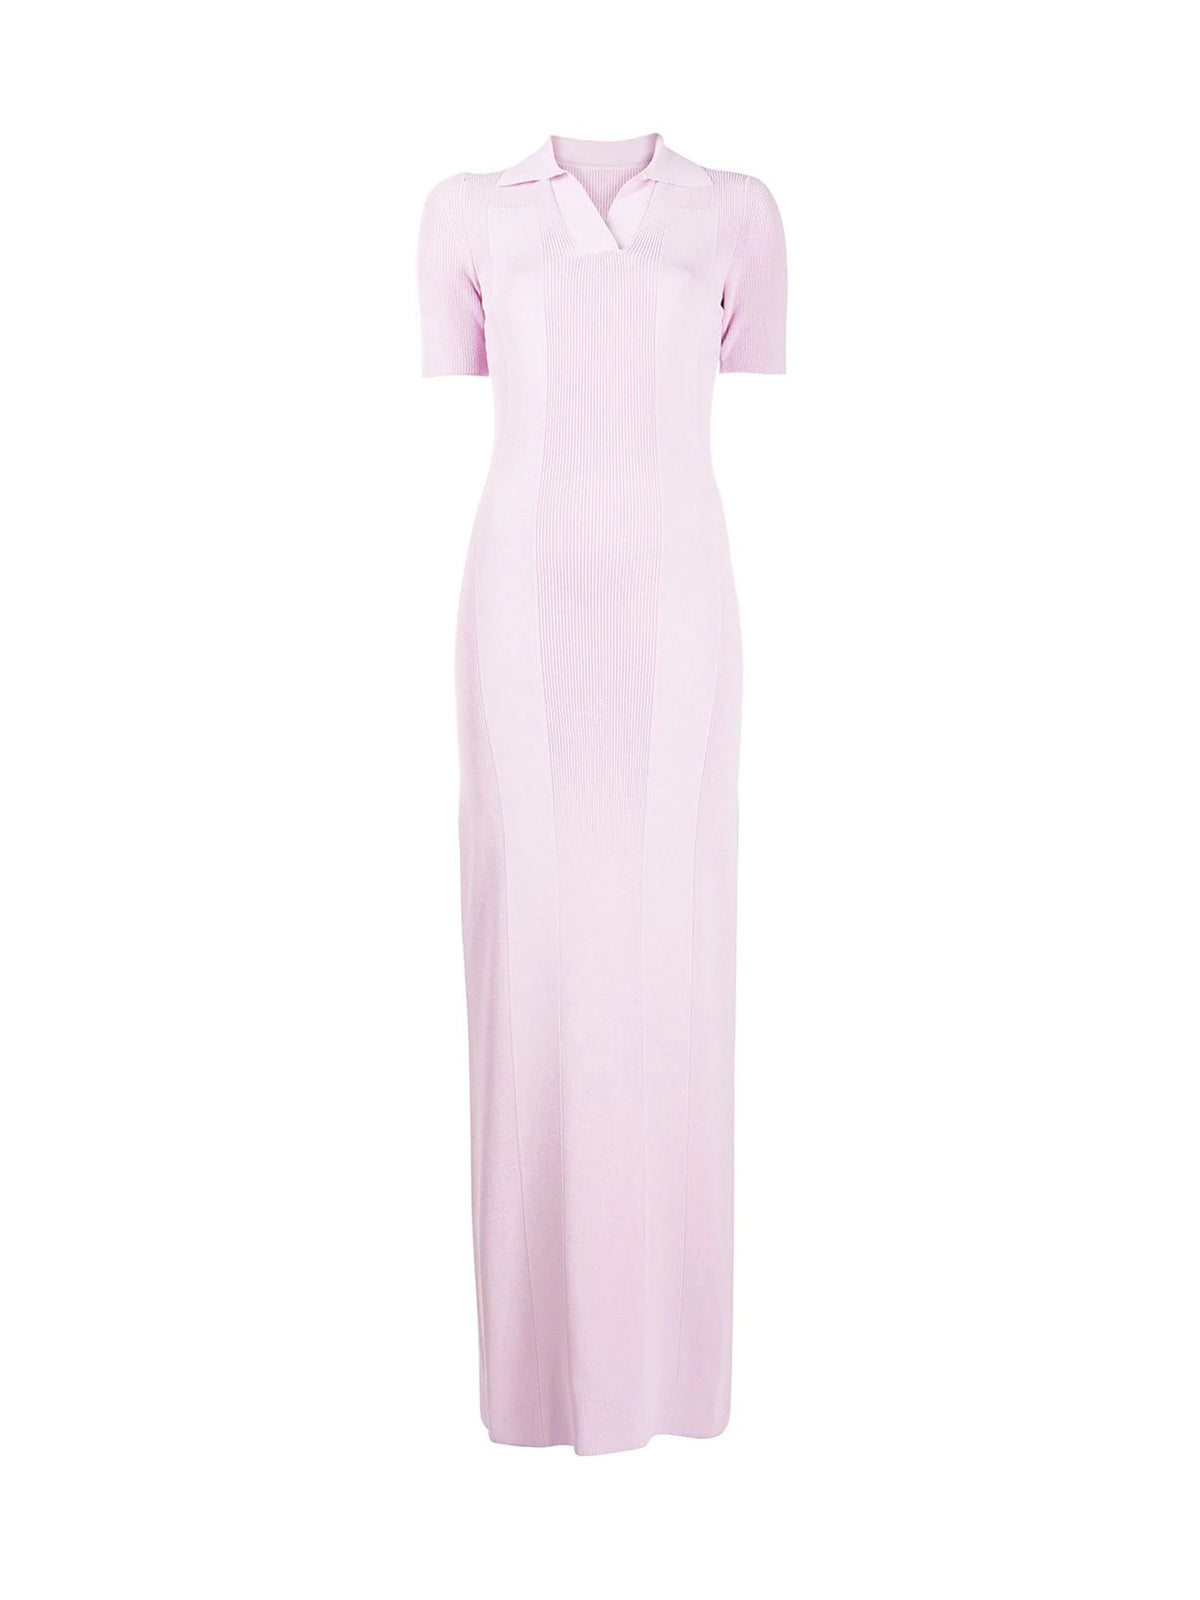 La Robe Maille Polo long dress